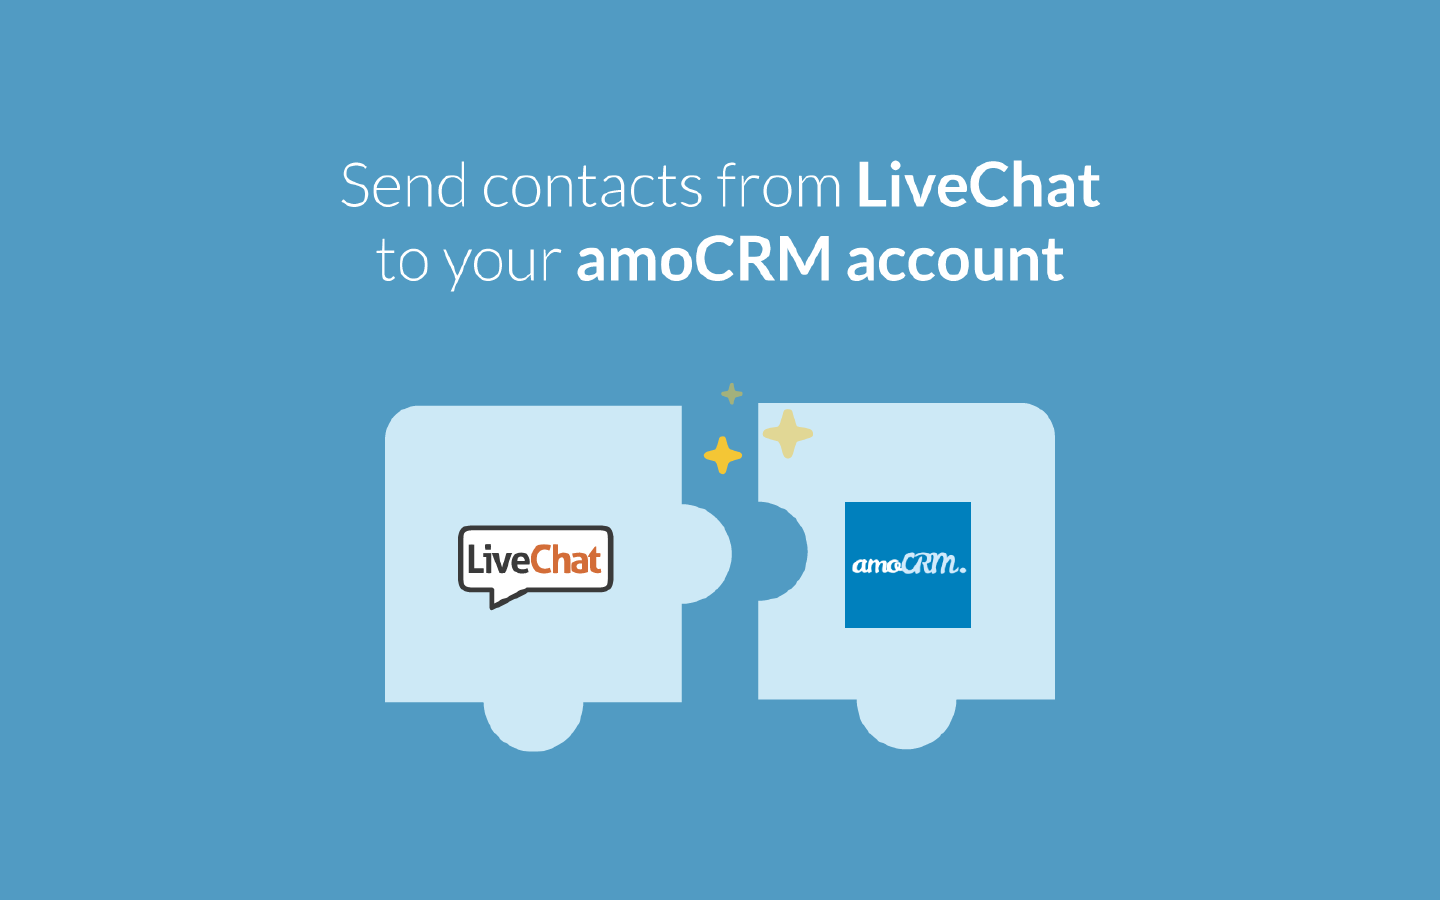 LiveChat integrates with amoCRM